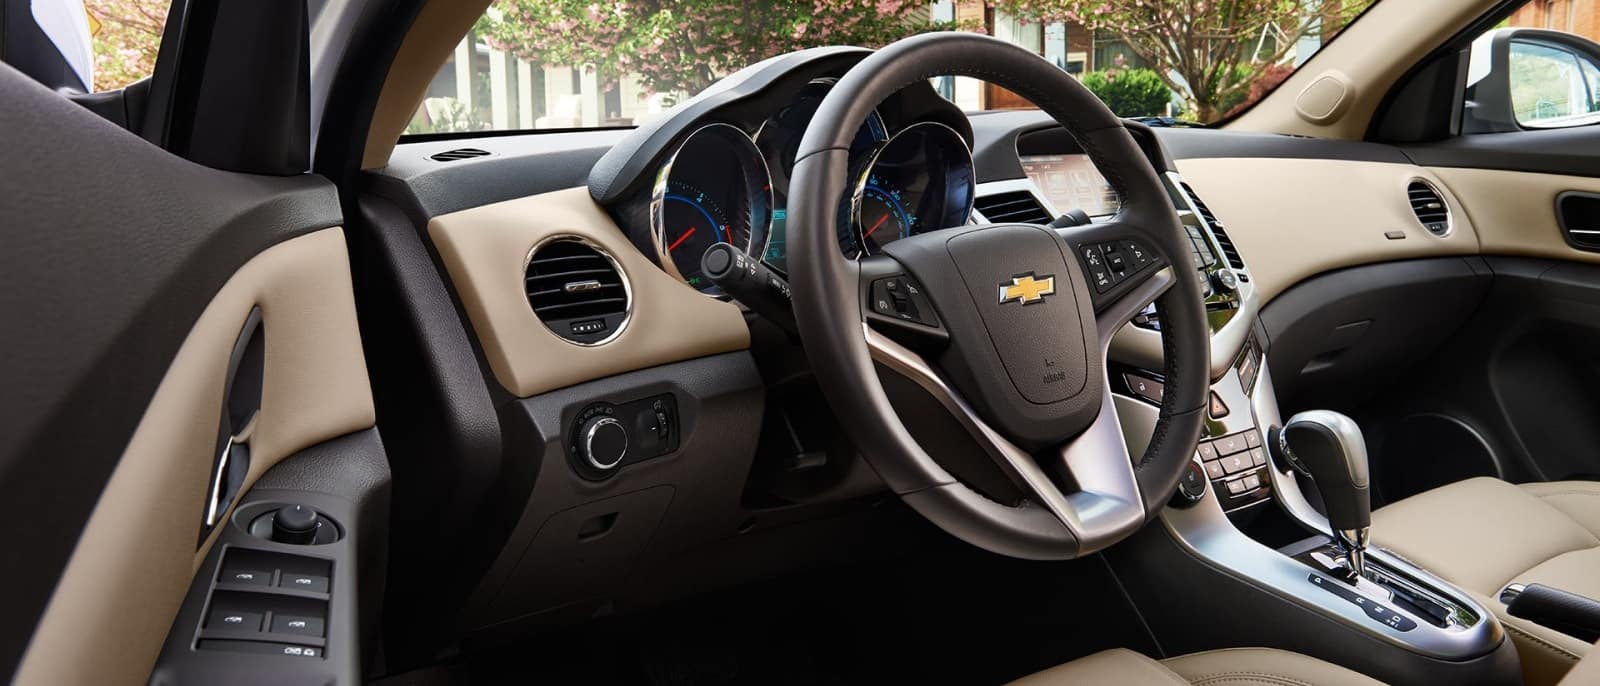 Chevrolet Cruze Infotainment System: Steering Wheel Controls